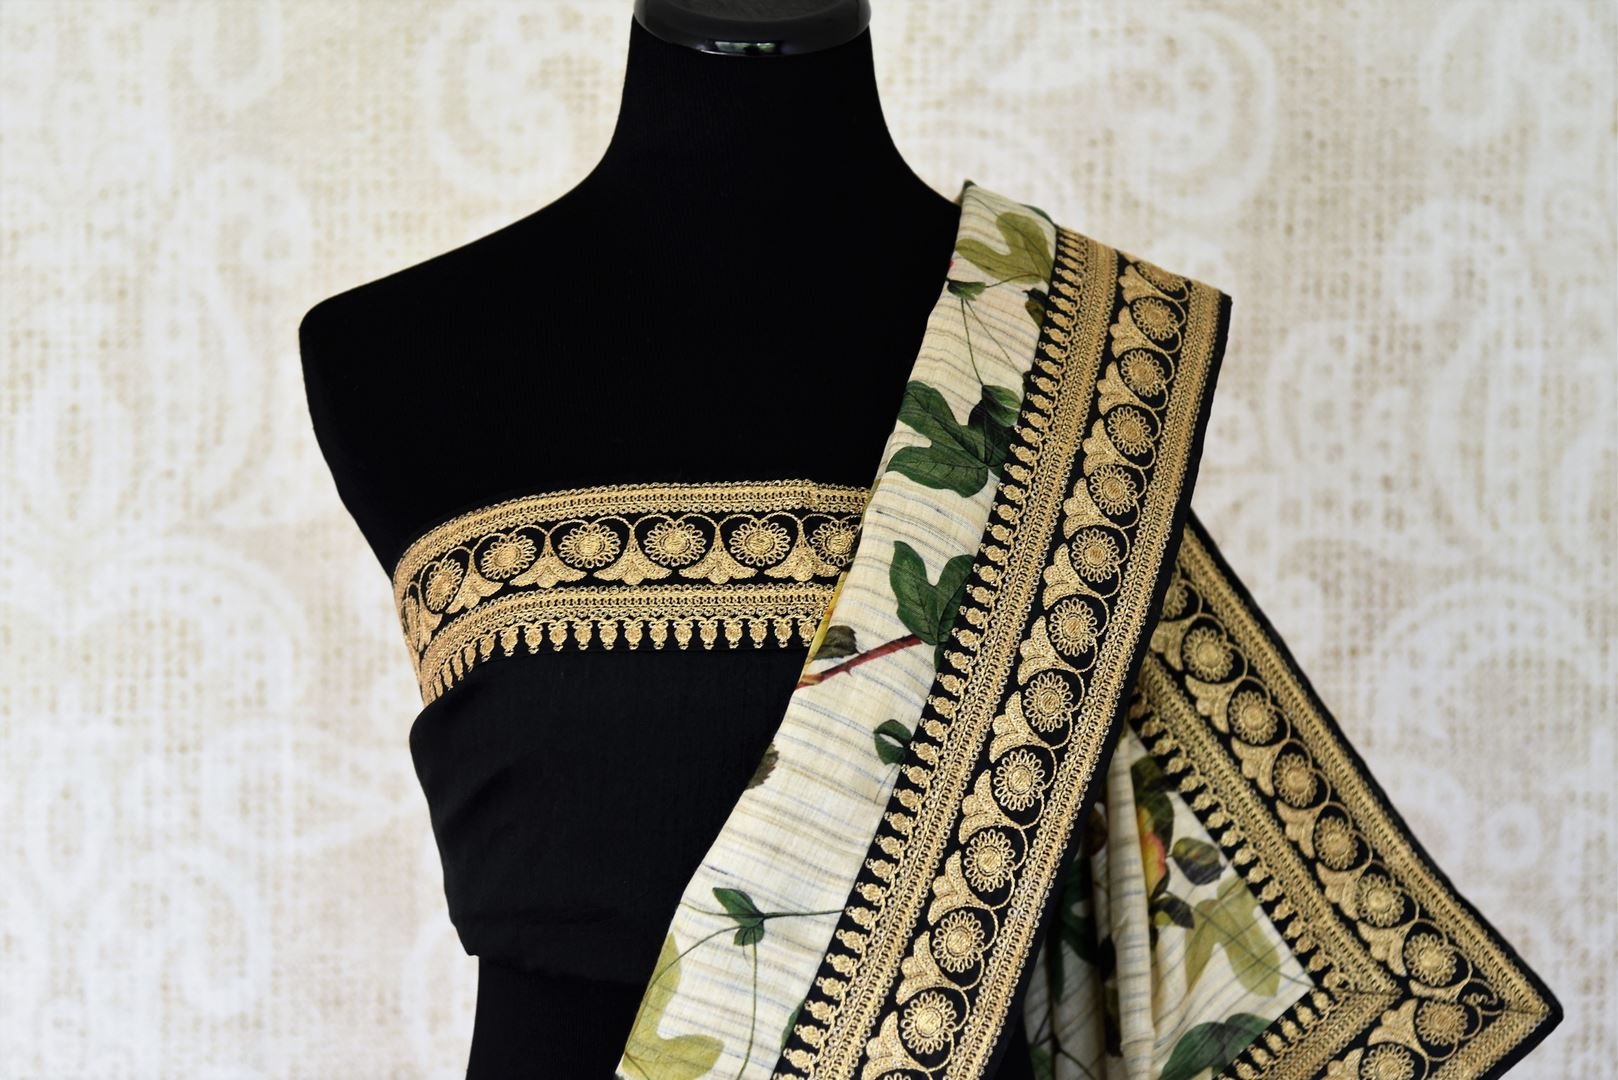 Buy off-white floral print muga tussar saree online in USA with embroidered border. Take your Indian style a notch up with a range of beautiful Indian clothing from Pure Elegance fashion store. We have a range of traditional Indian saris, designer sarees, handloom sarees in USA online and in our store. Shop now.-blouse pallu